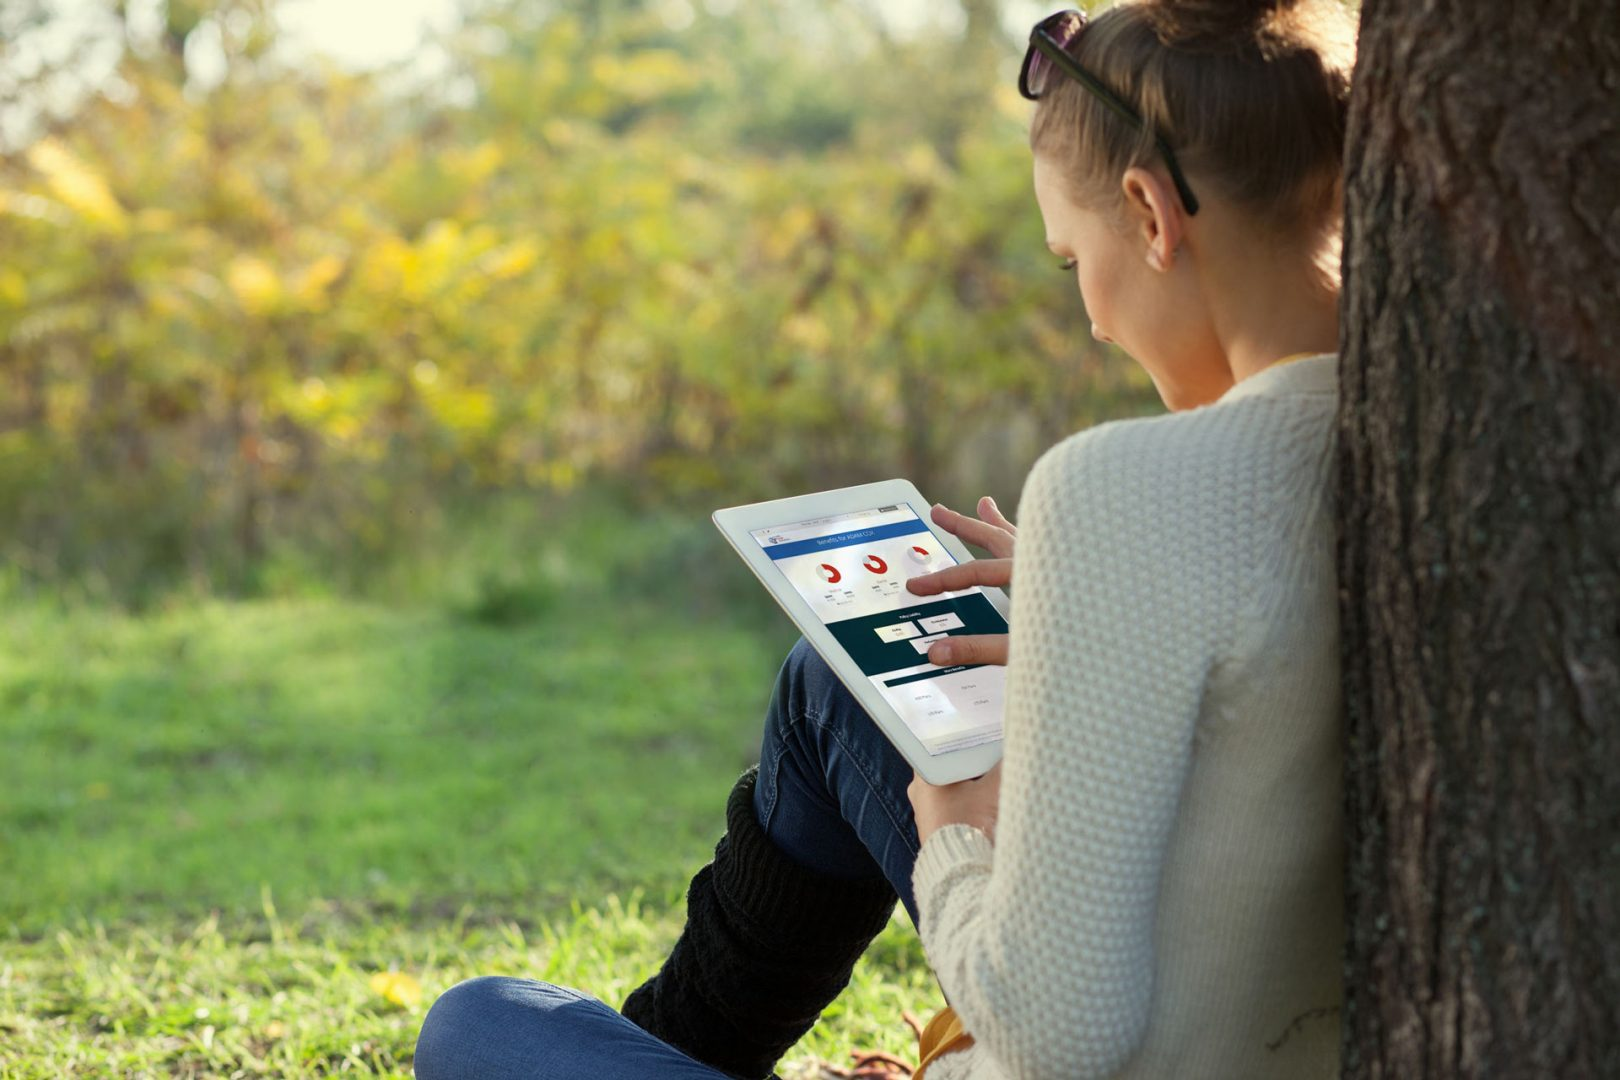 woman sitting on the grass under a tree with using an ipad to look at donut charts